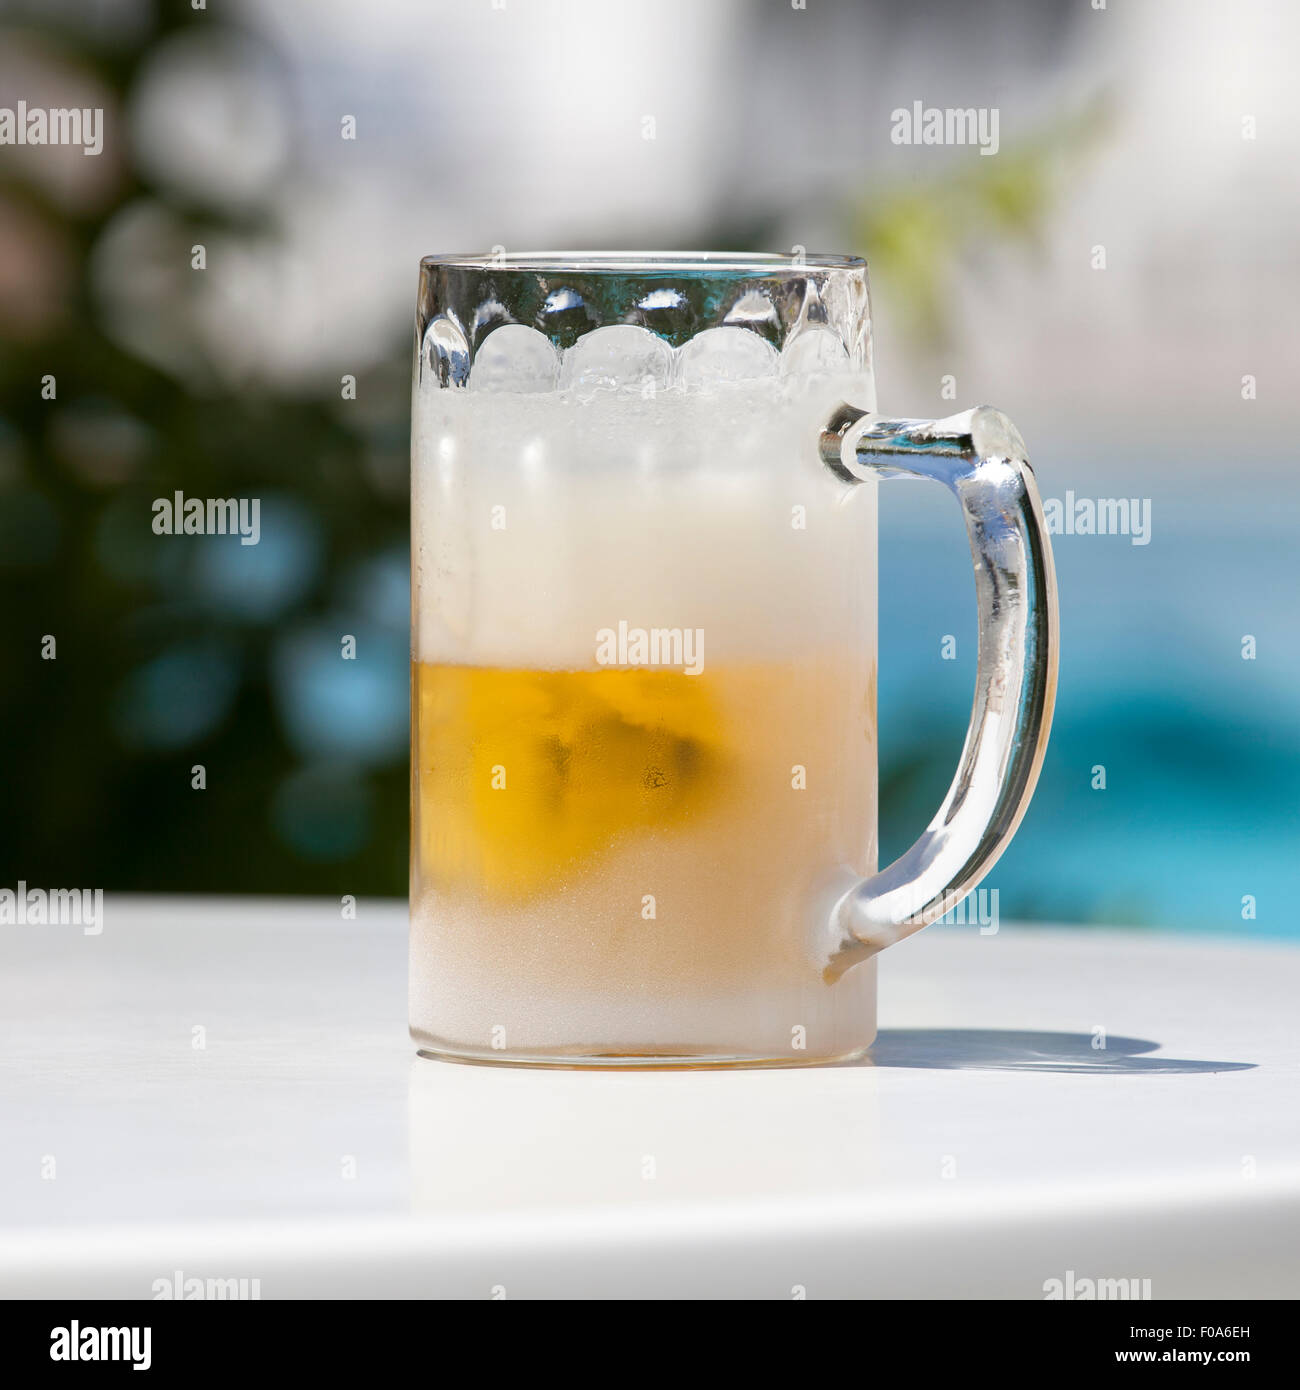 Extremely cold glass with beer on a table in a very hot summer day. Image with clipping path. - Stock Image